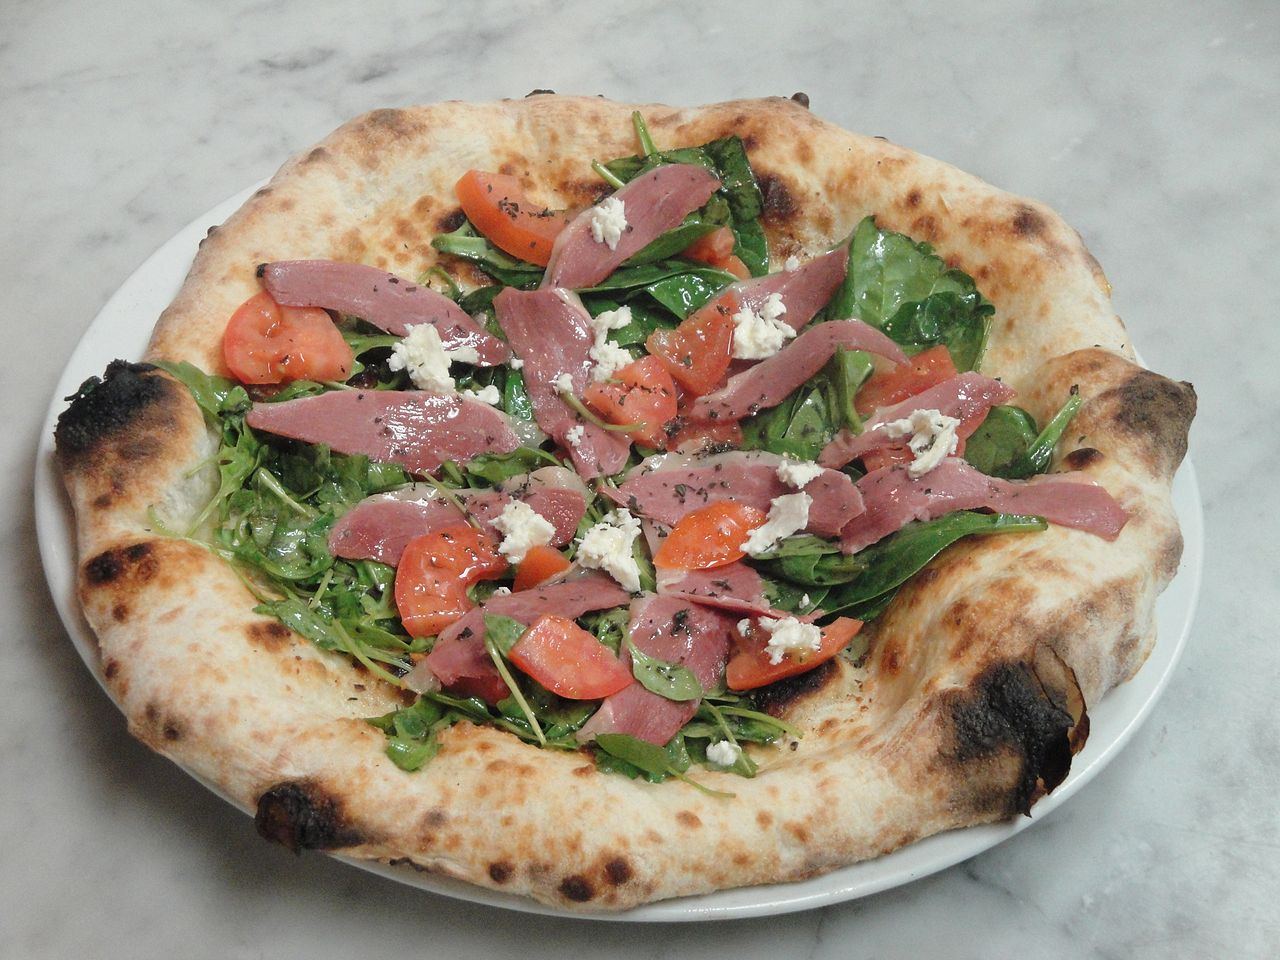 File:Smoked Duck Breast Pizza.jpg - Wikimedia Commons